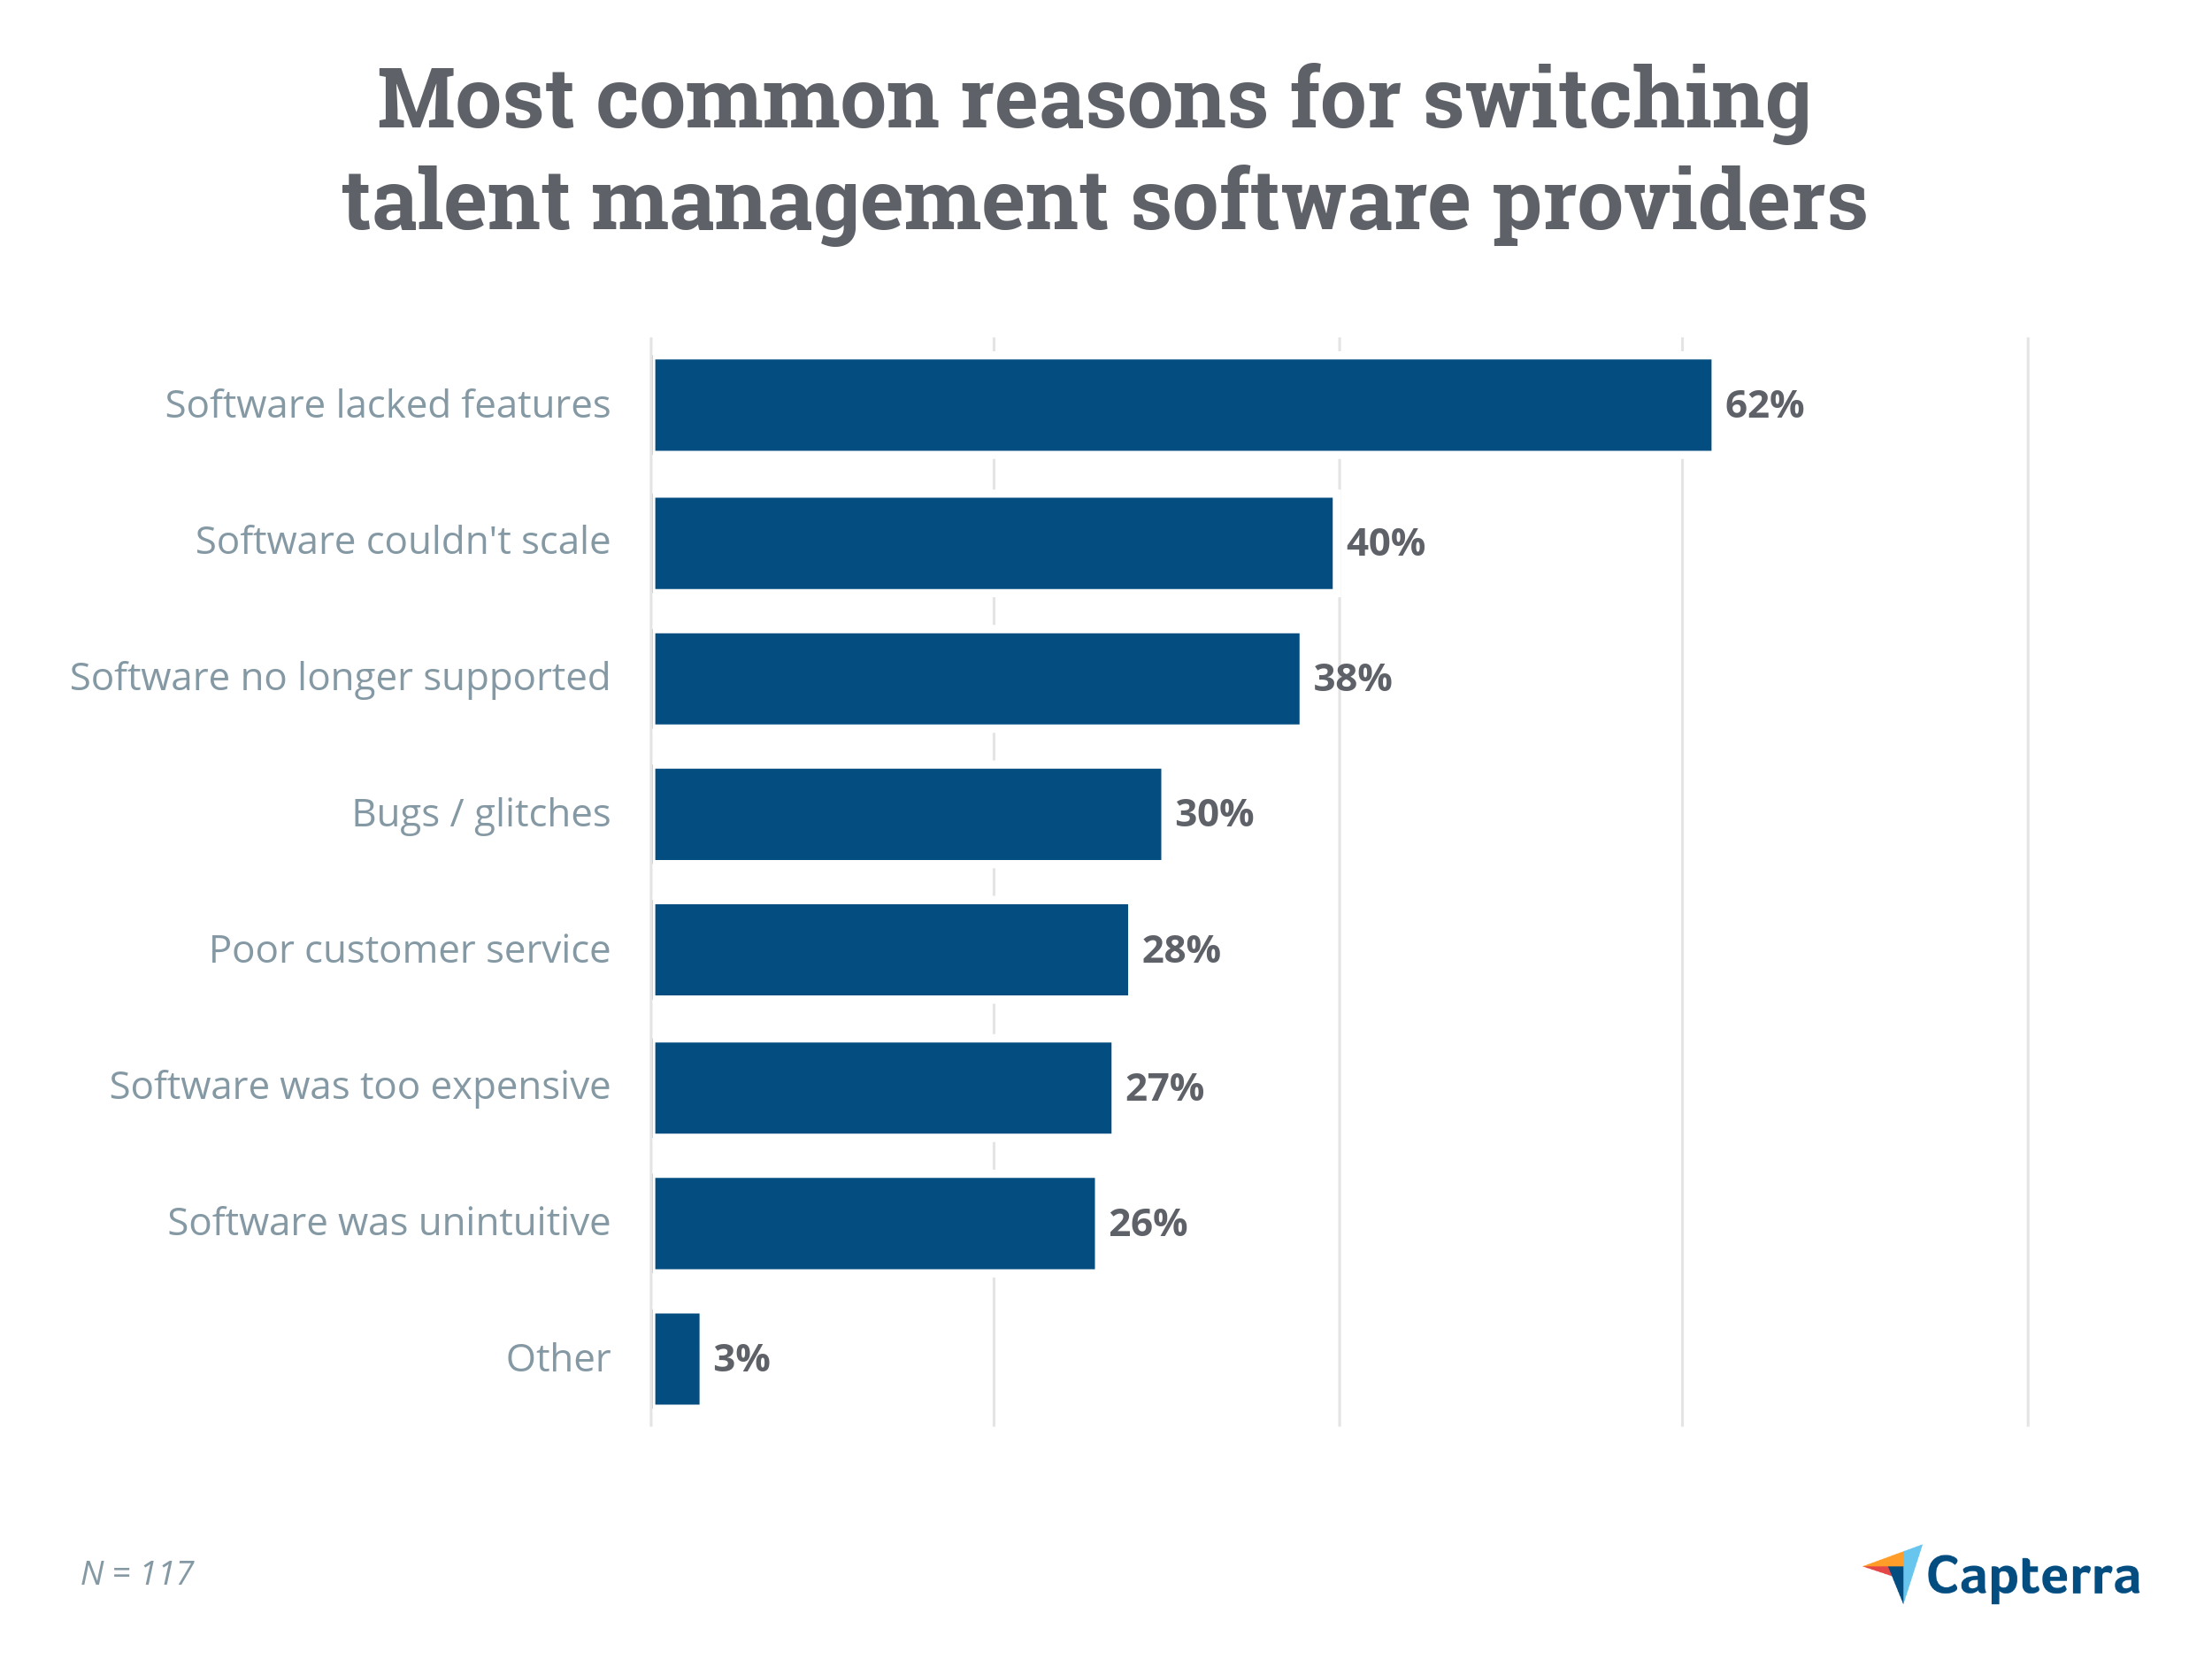 Most common reasons for switching talent management software providers